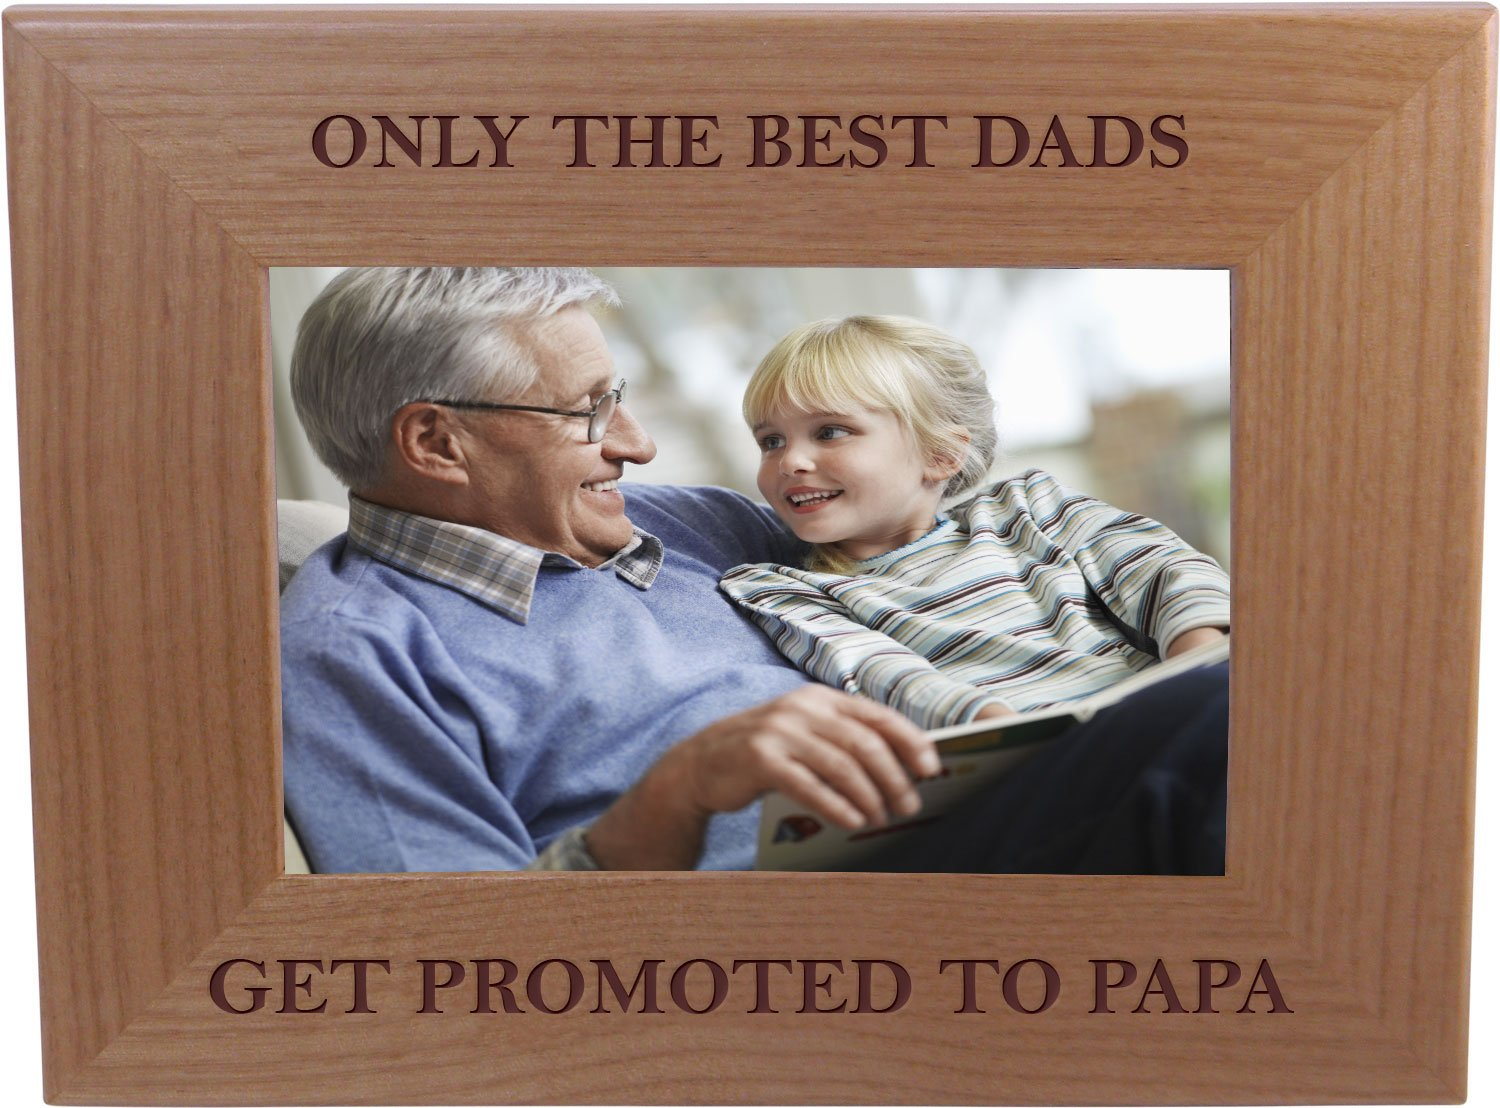 CustomGiftsNow Only The Best Dads Get Promoted To Papa 4-inch x 6-Inch Wood Picture Frame by CustomGiftsNow (Image #1)